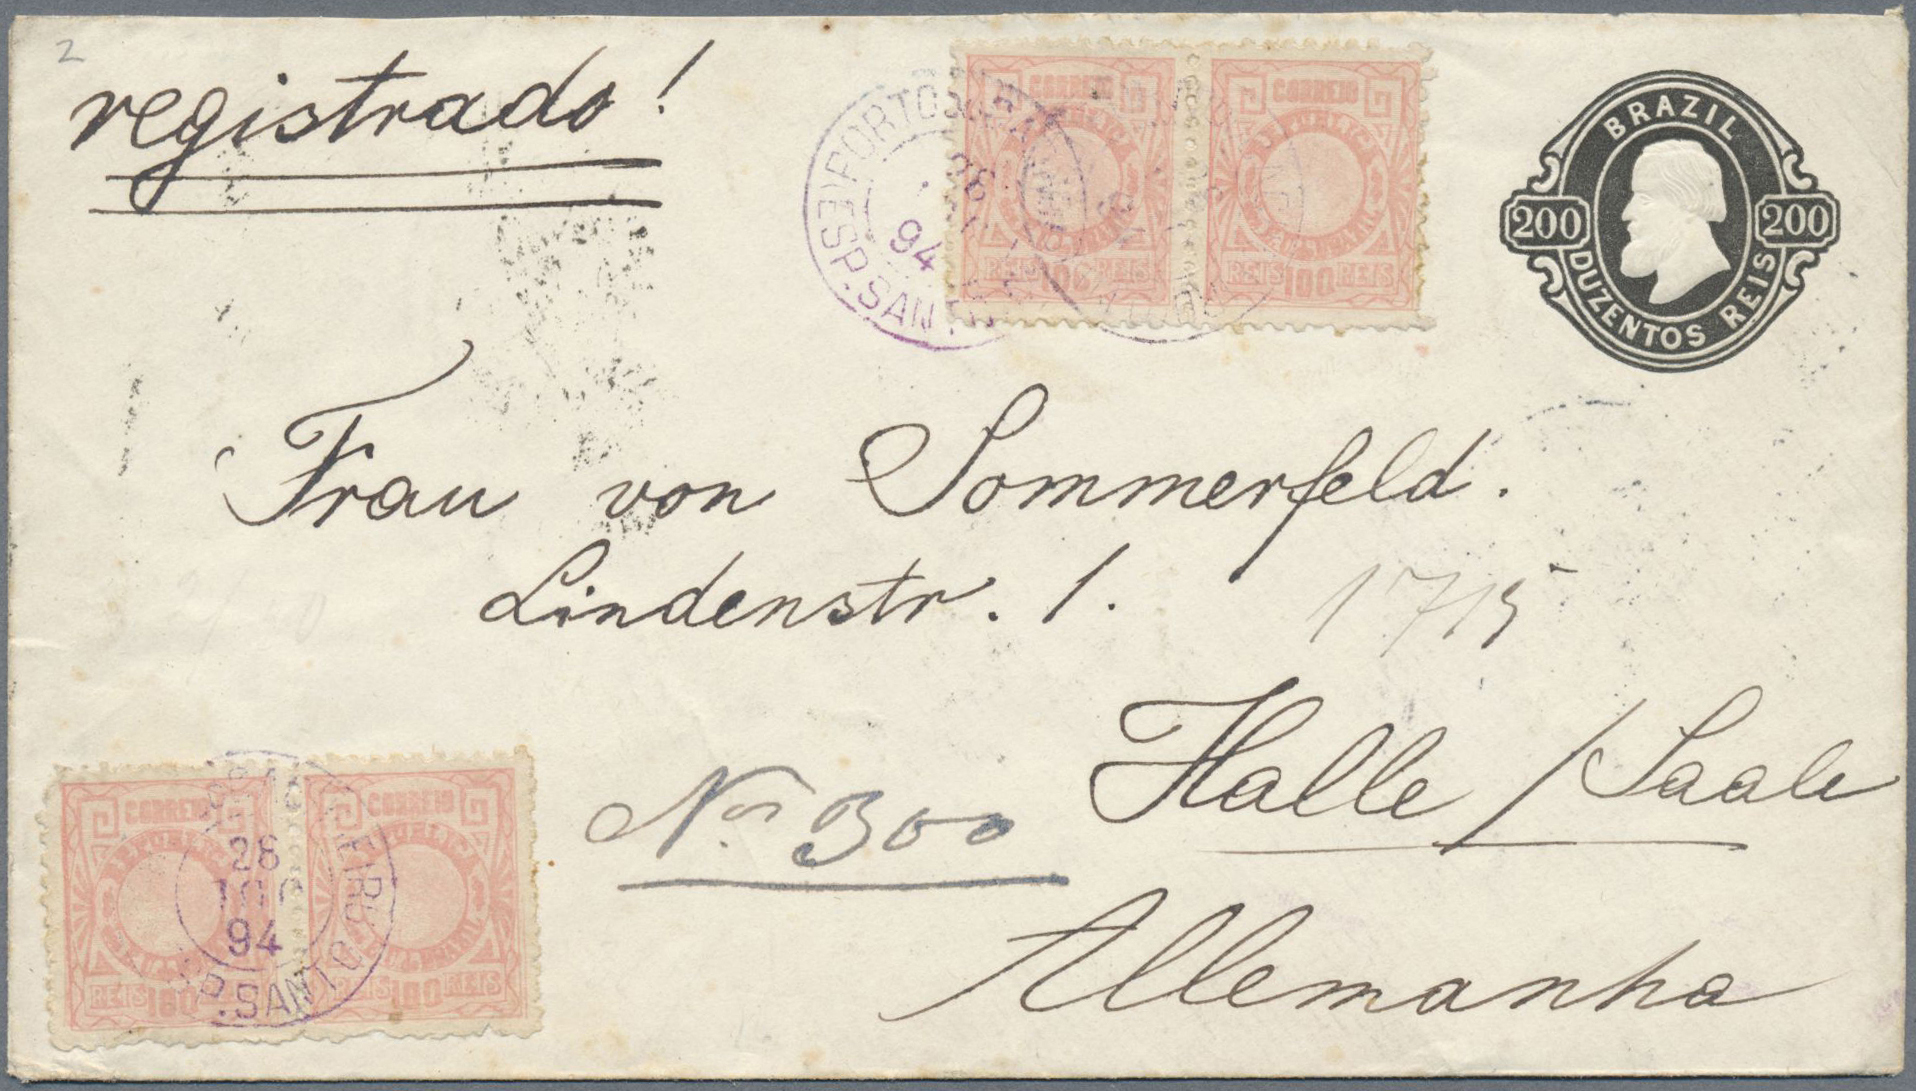 Lot 13427B - Brasilien - Ganzsachen  -  Auktionshaus Christoph Gärtner GmbH & Co. KG Single lots Philately Overseas & Europe. Auction #39 Day 4